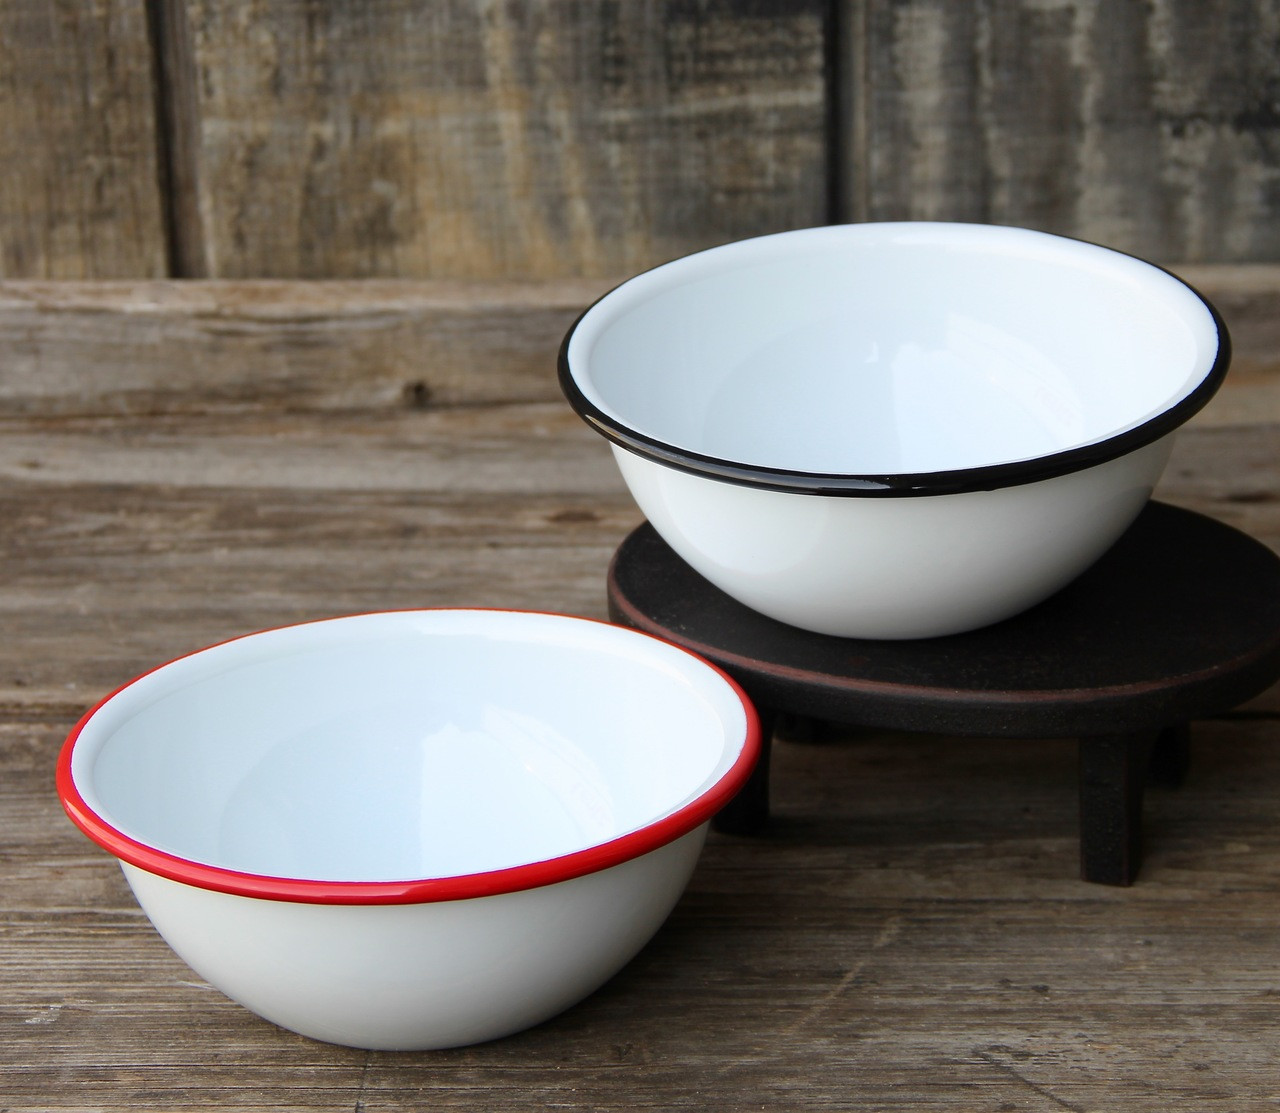 White Enamel Vintage Cereal Bowl Rustic Camping Tableware Country Kitchen Decor